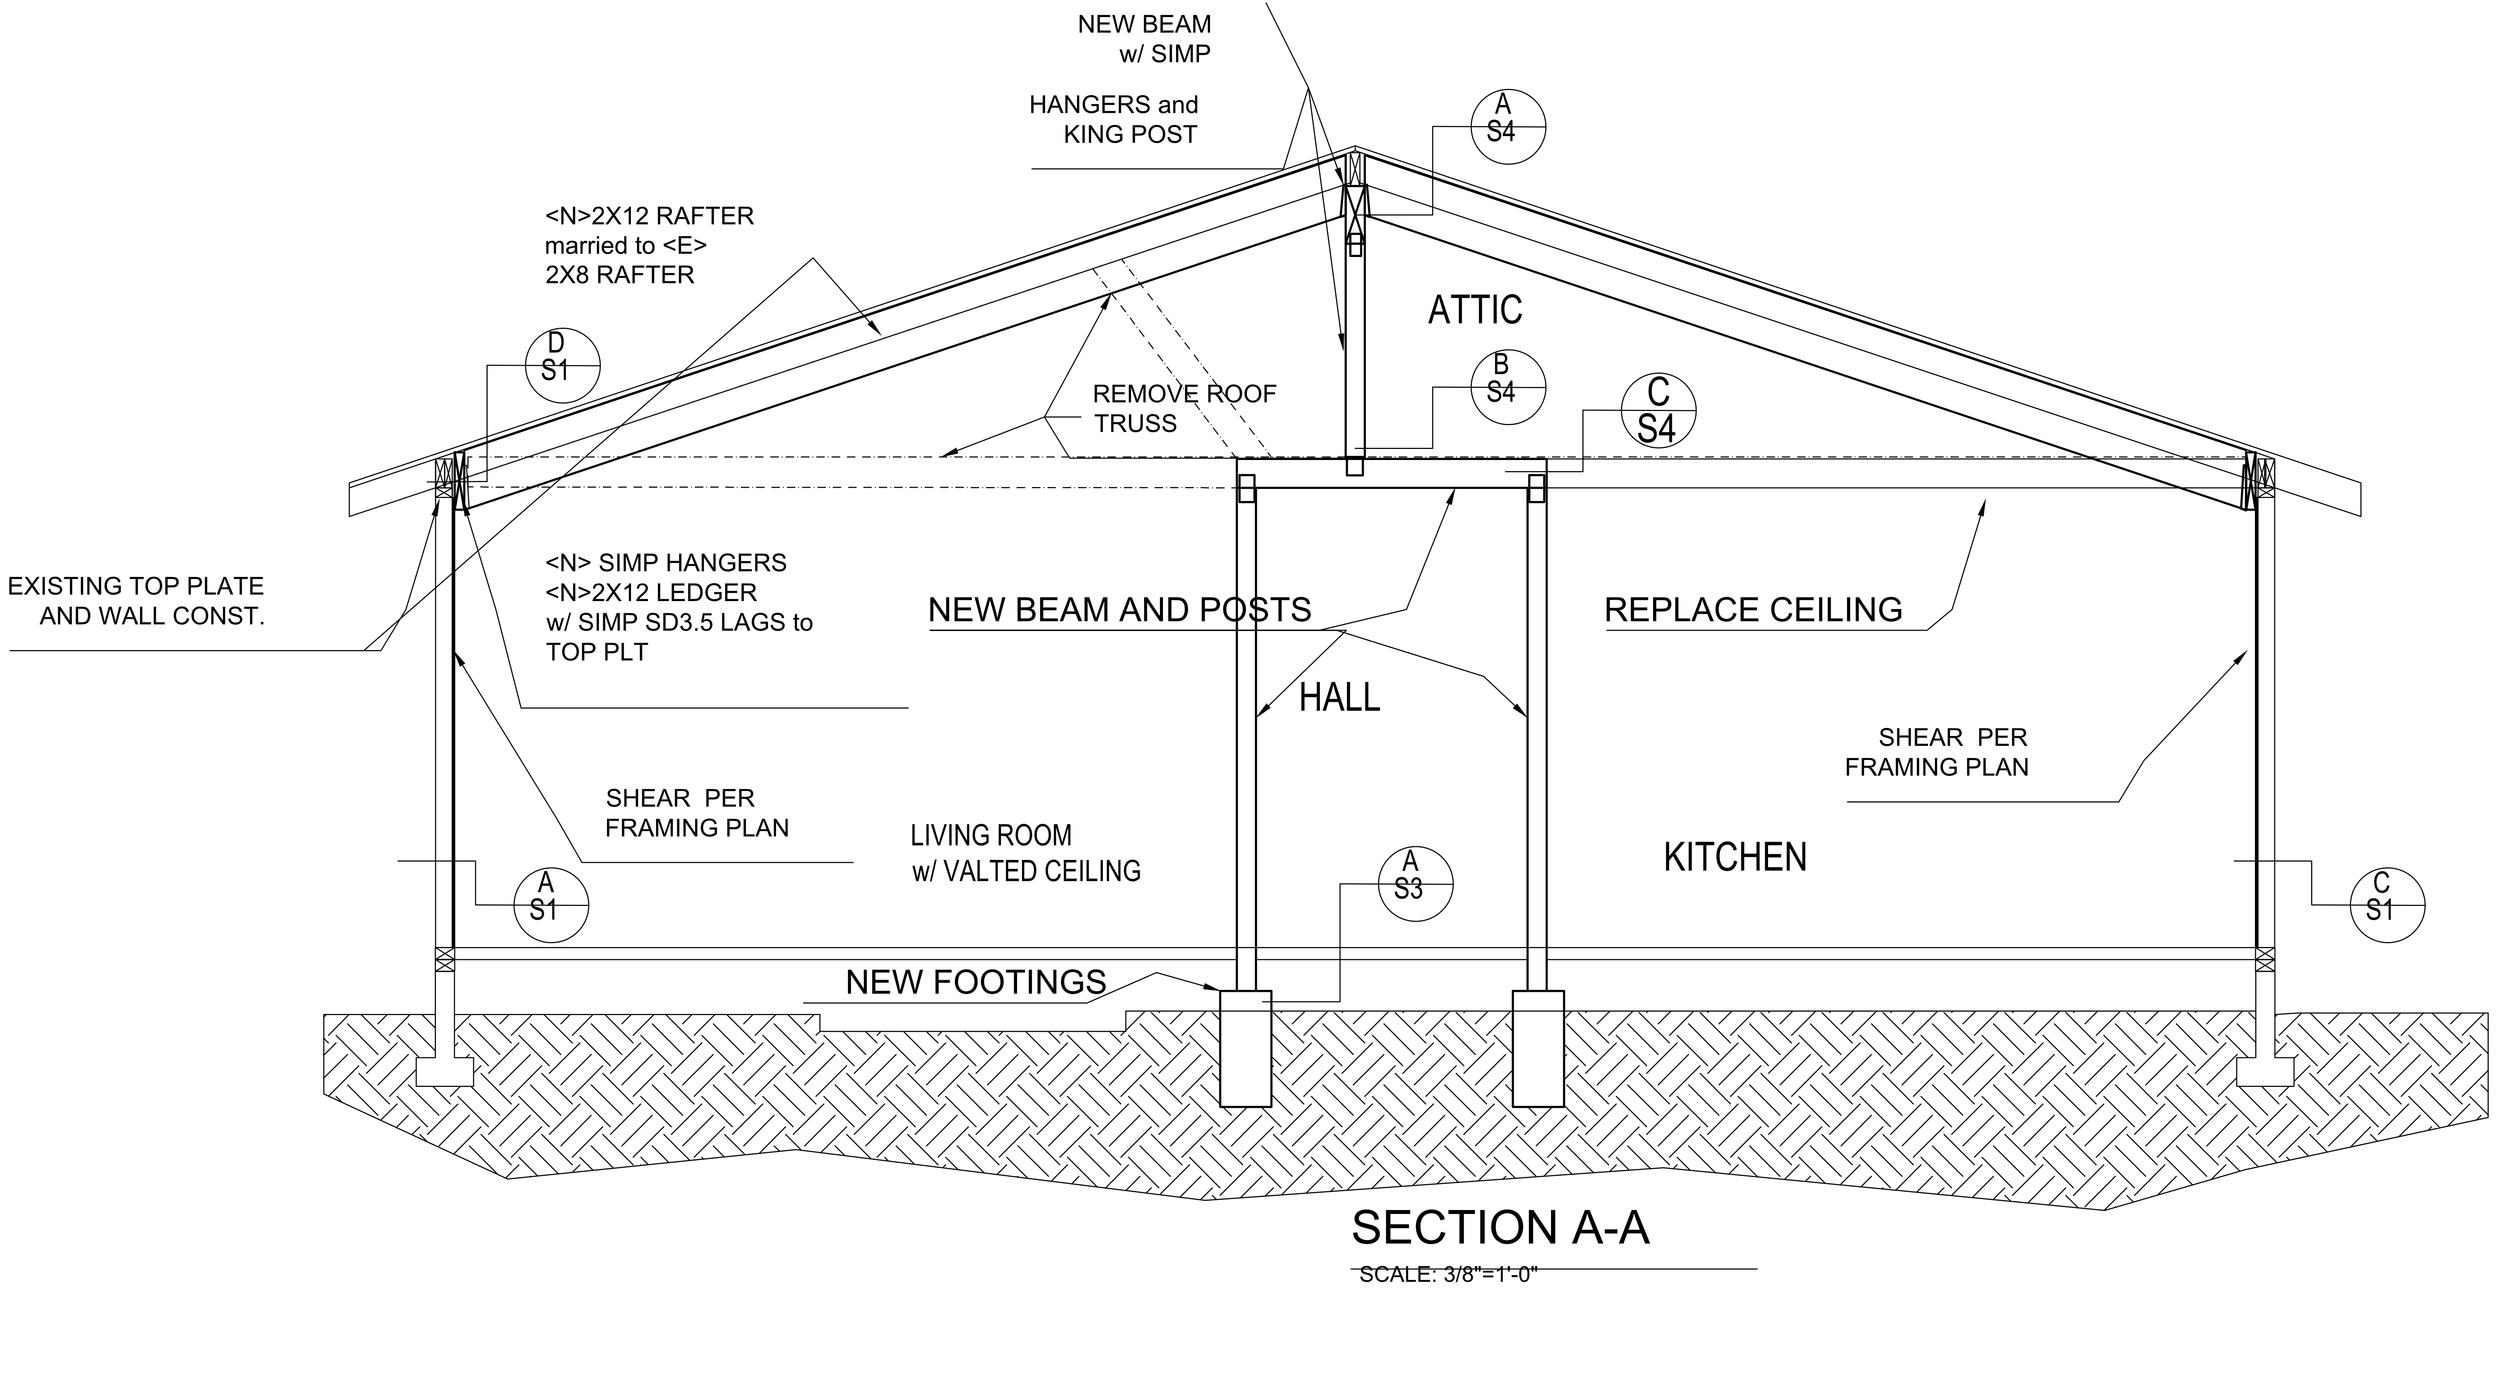 Vaulting The Ceiling Part I Plans And Permits Frugal Happy